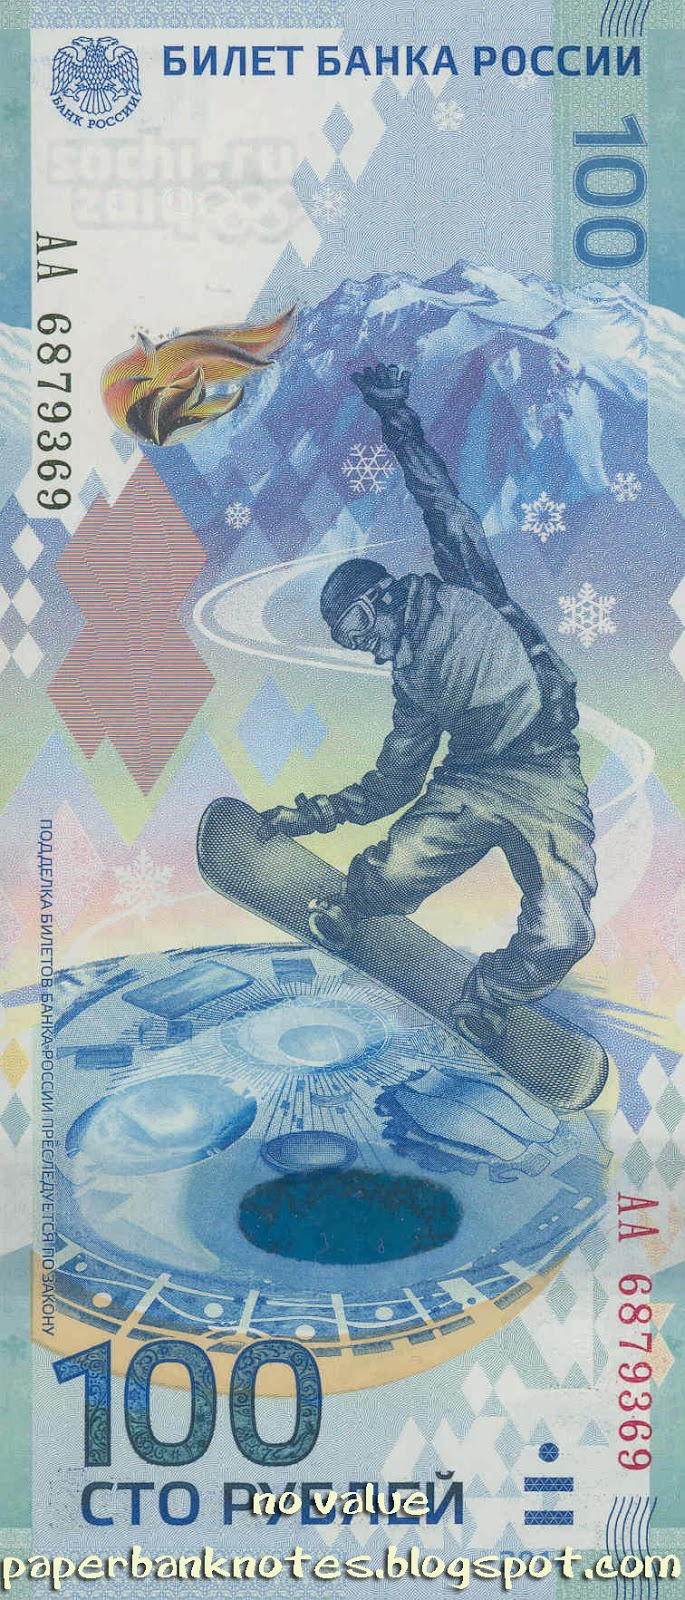 Russia Commemorative banknotes for the 2014 winter Olympics in sochi